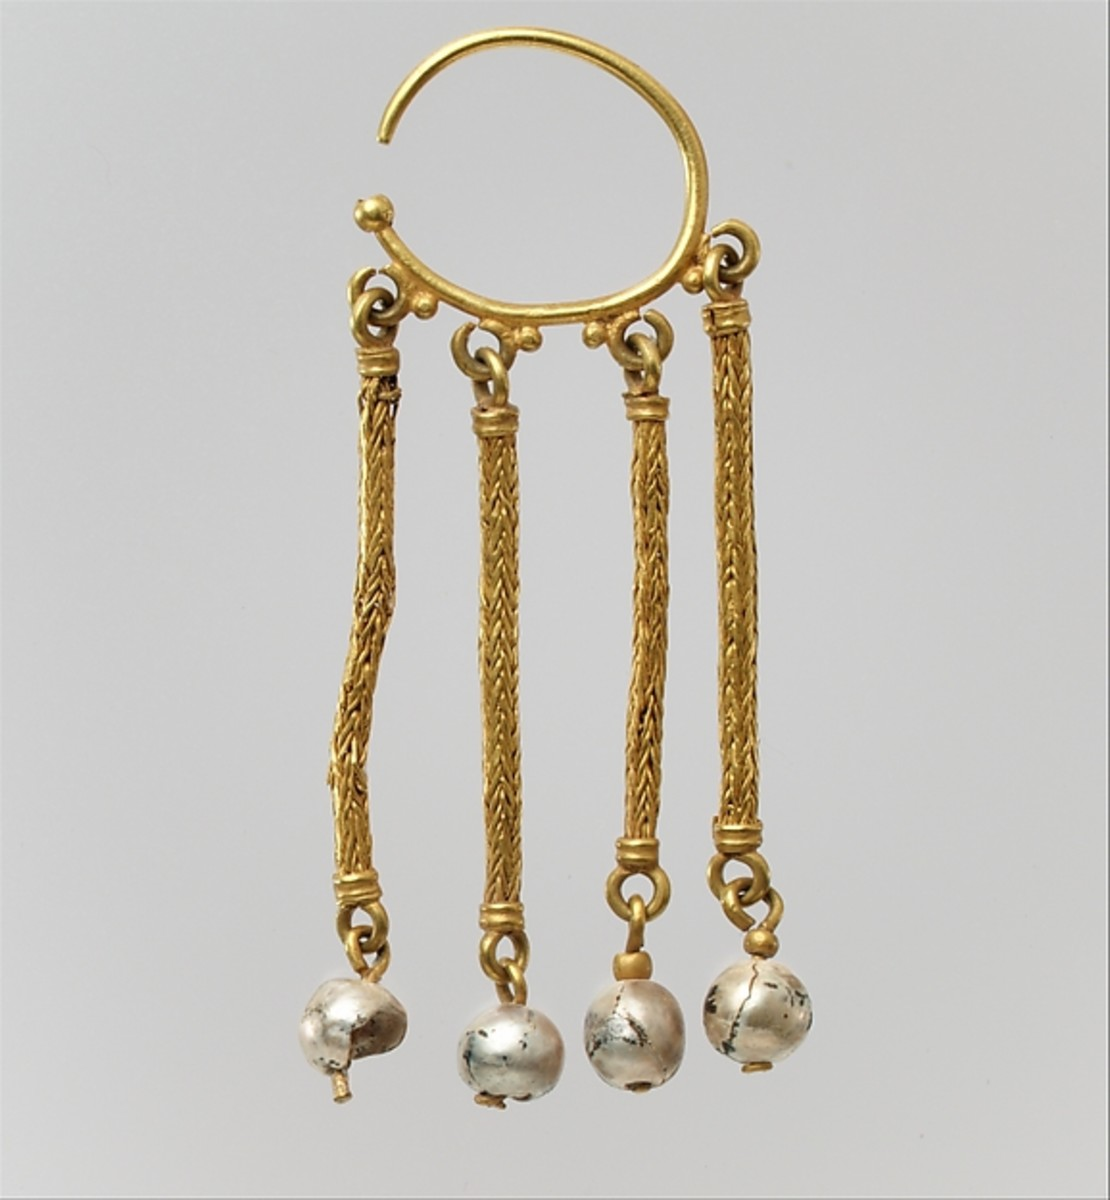 Date:Between 6th and 7th century Medium:Gold, pearls Location:The Met Fifth Avenue in Gallery 302